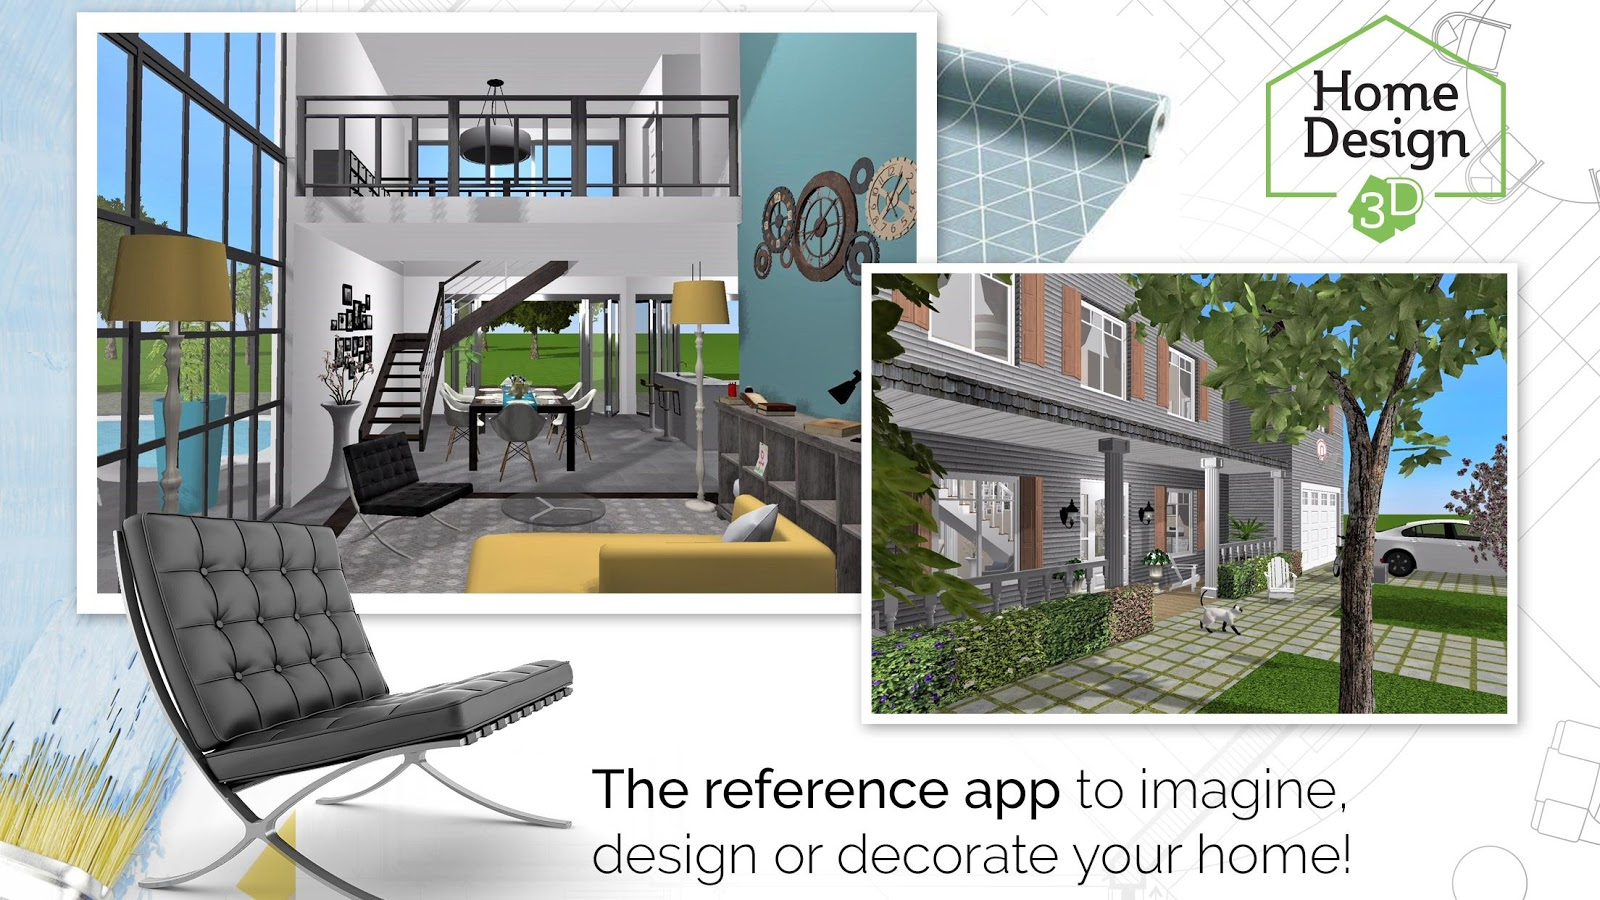 Home design 3d freemium 4 3 4 screenshot 1